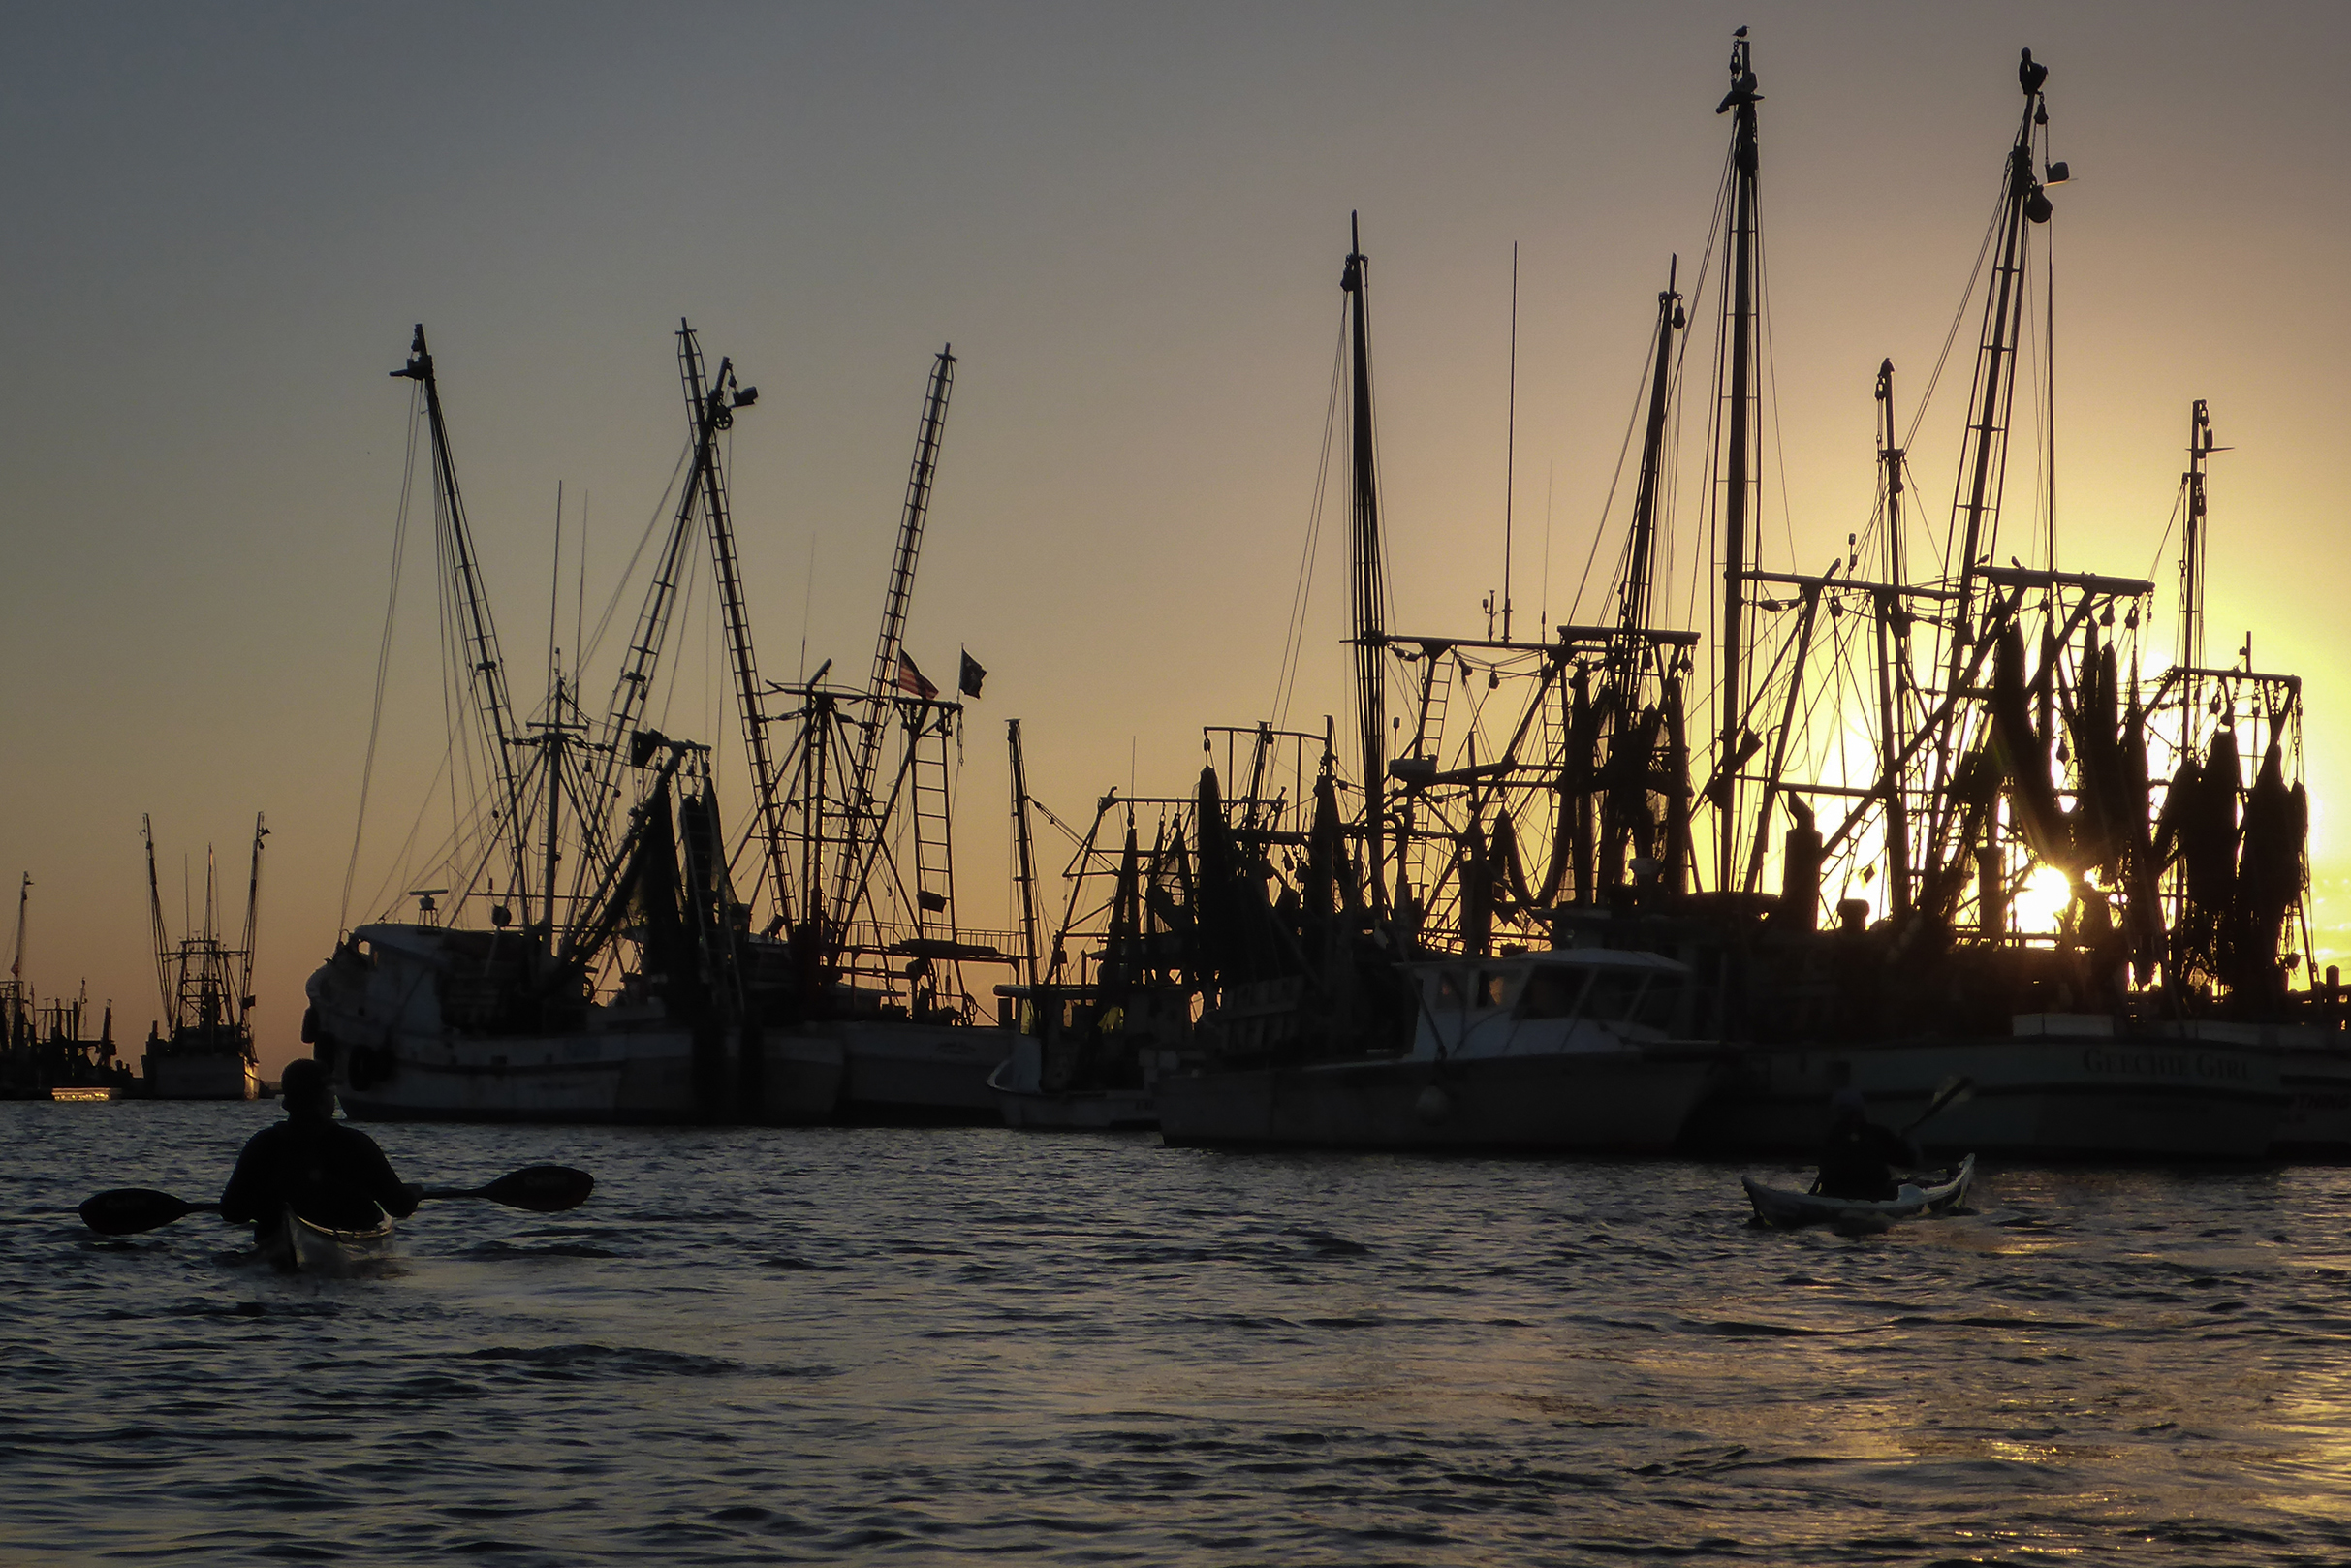 Kayakers paddle around commercial fishing boats at docks as the sun sets.